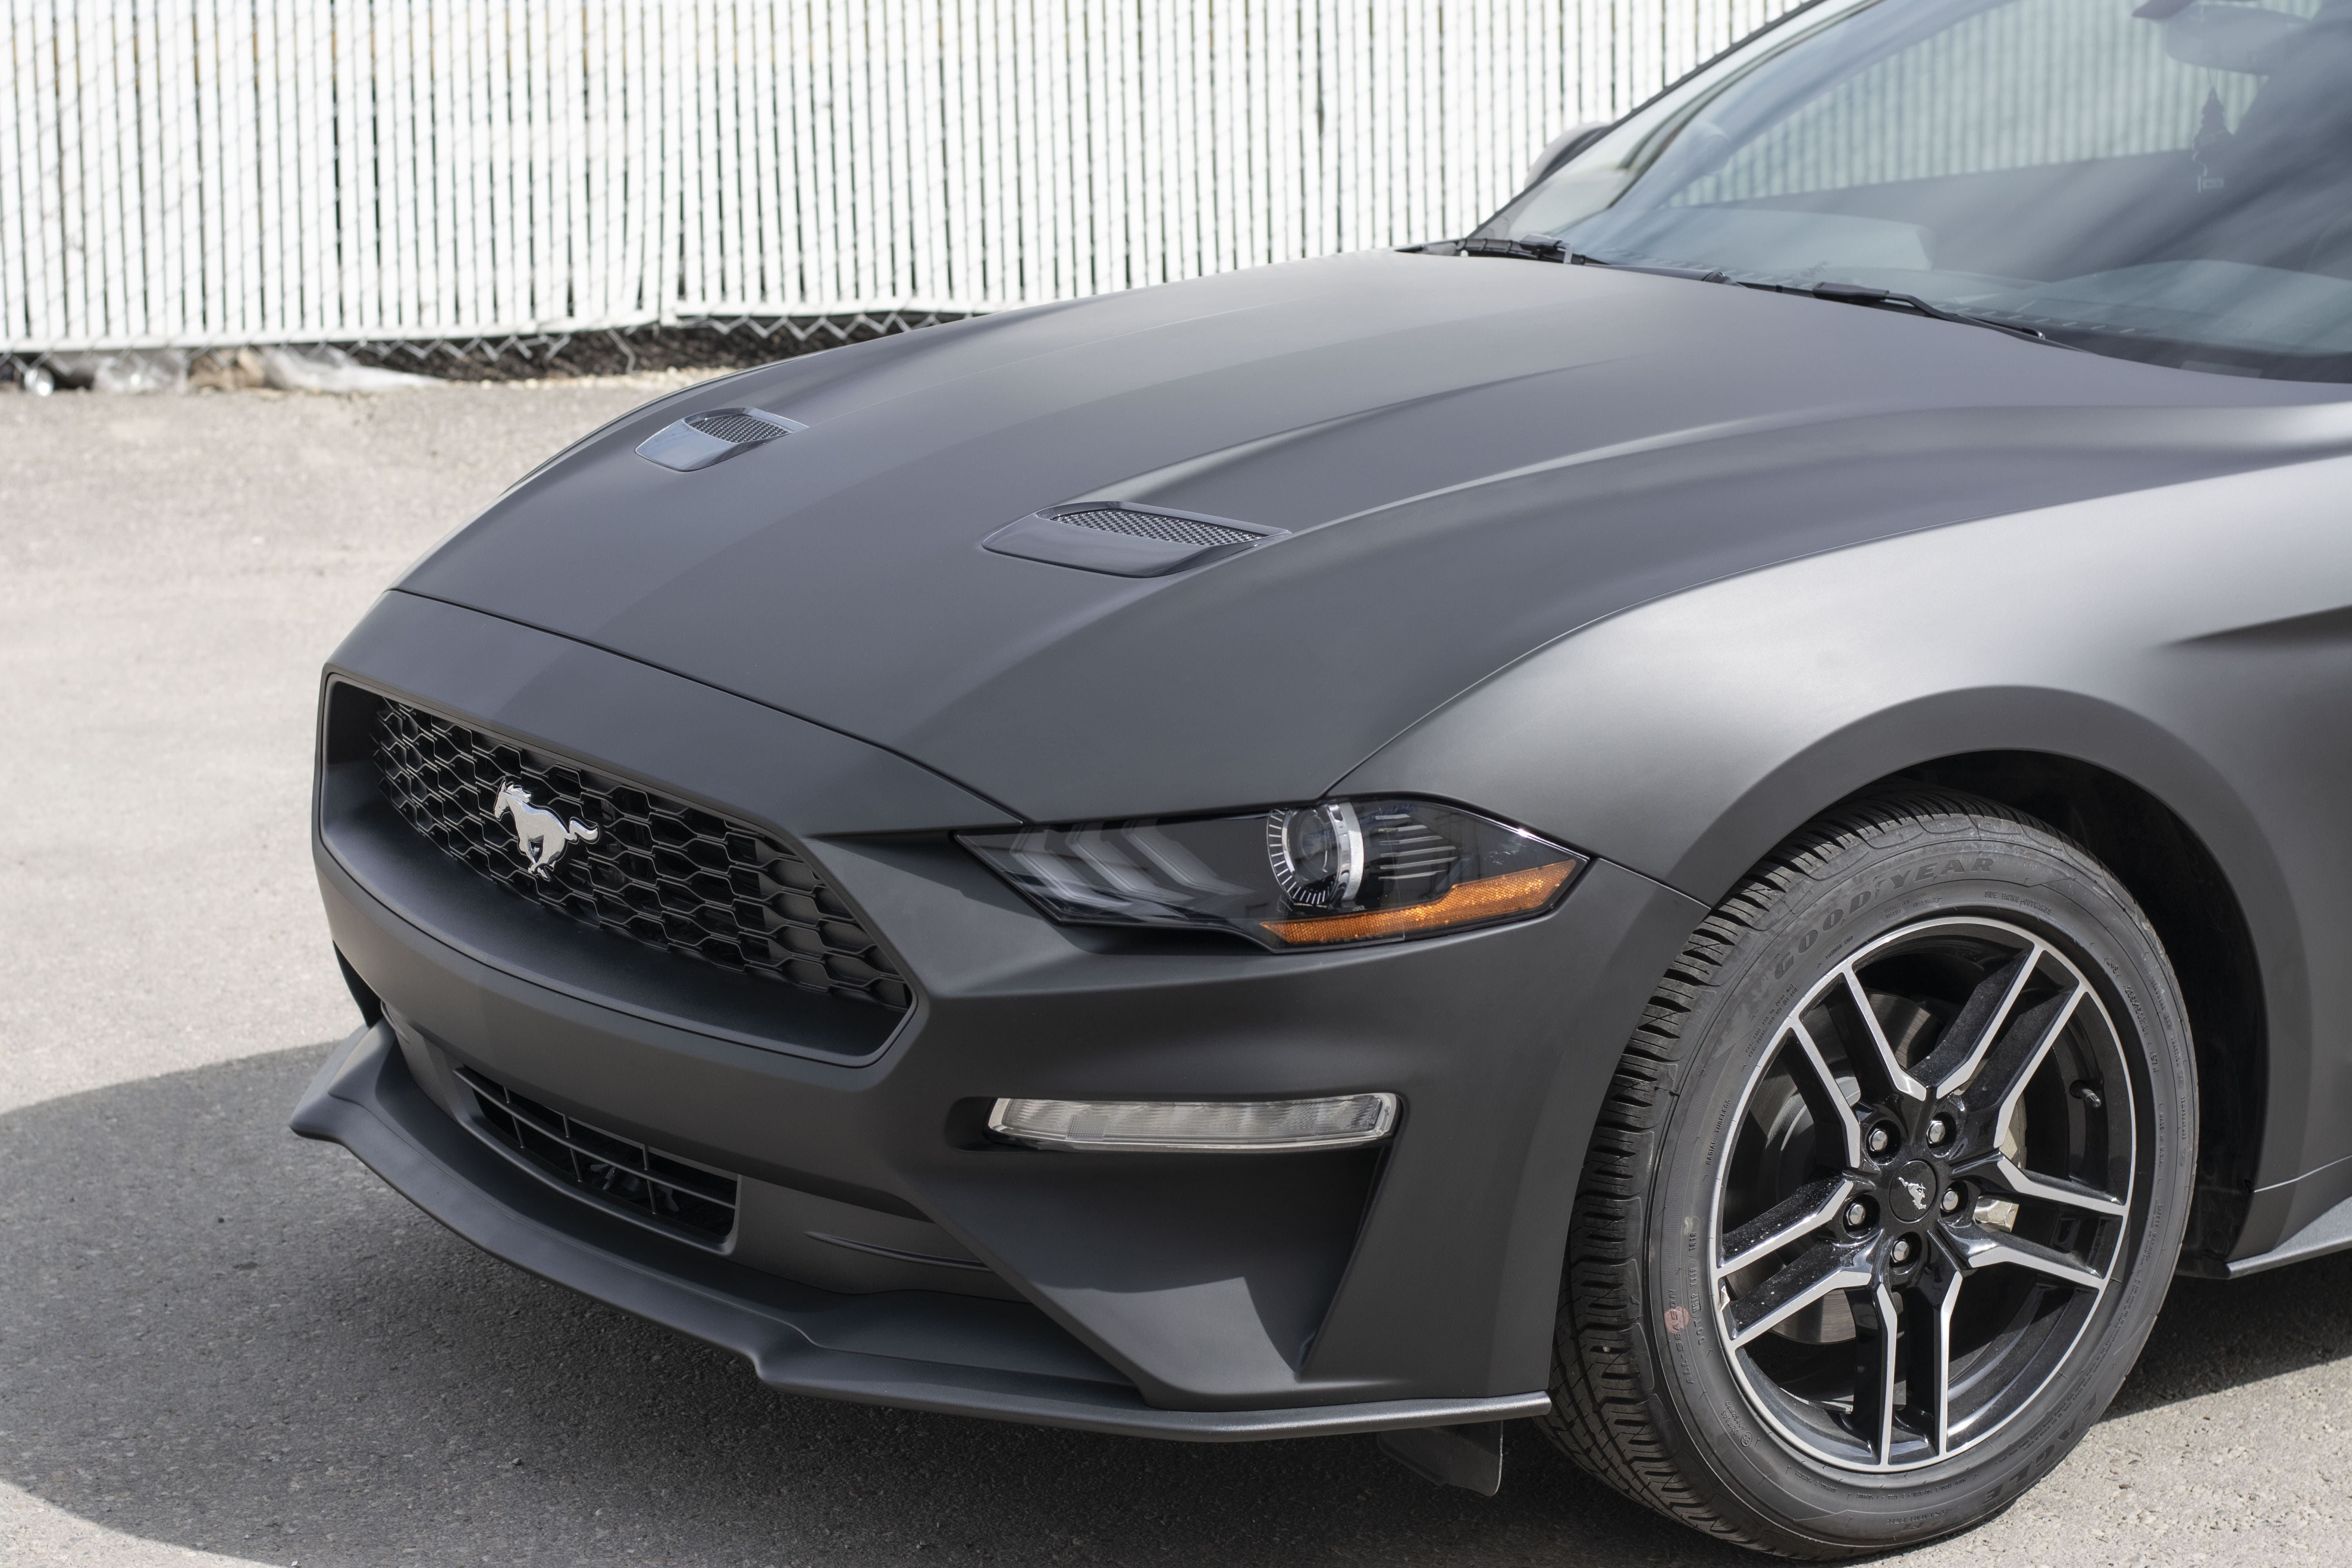 Ford Mustang wrapped in Avery Matte Black from front on the right side.